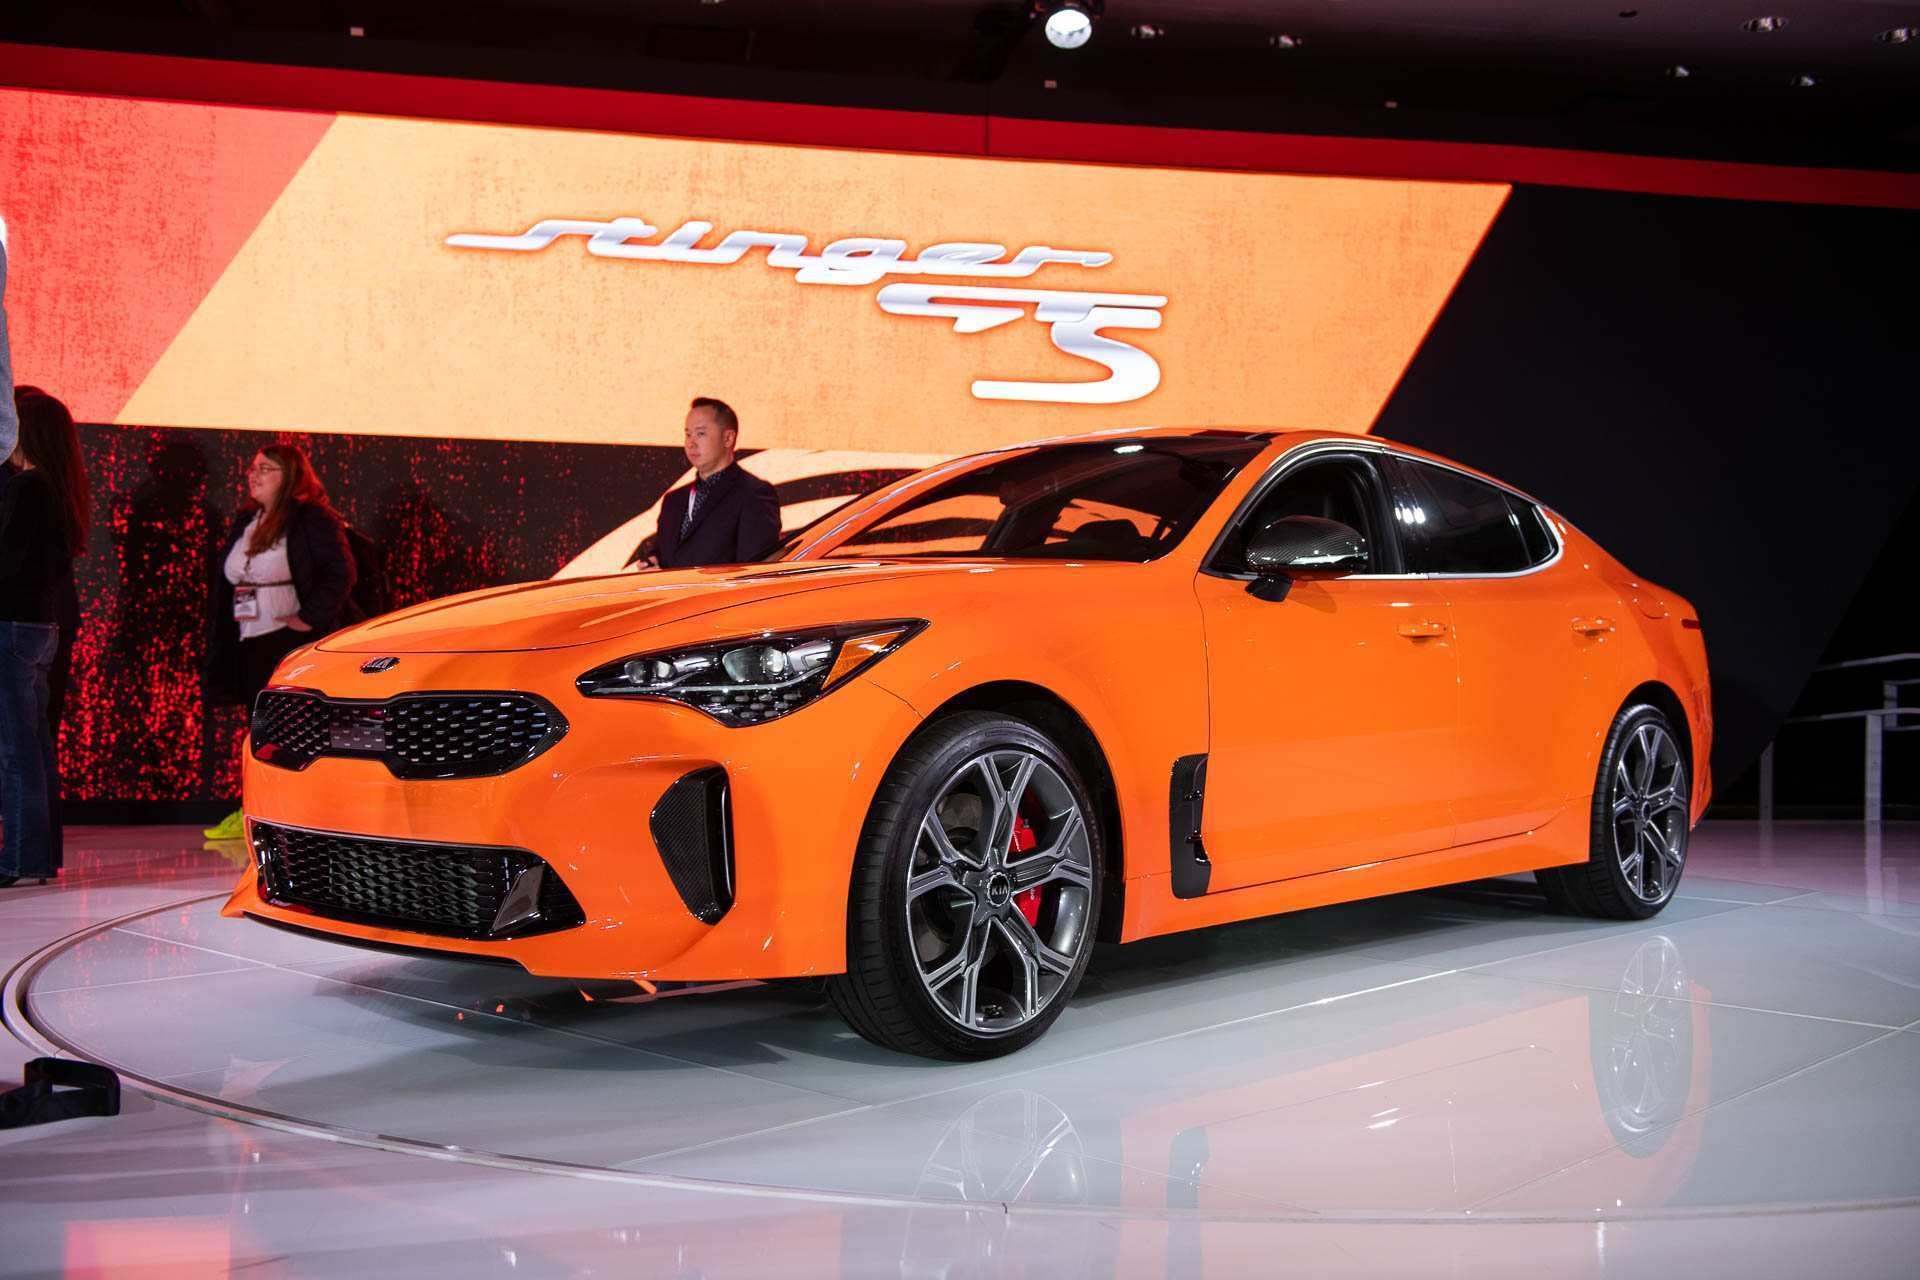 85 The Best 2020 Kia Gt Coupe Release Date